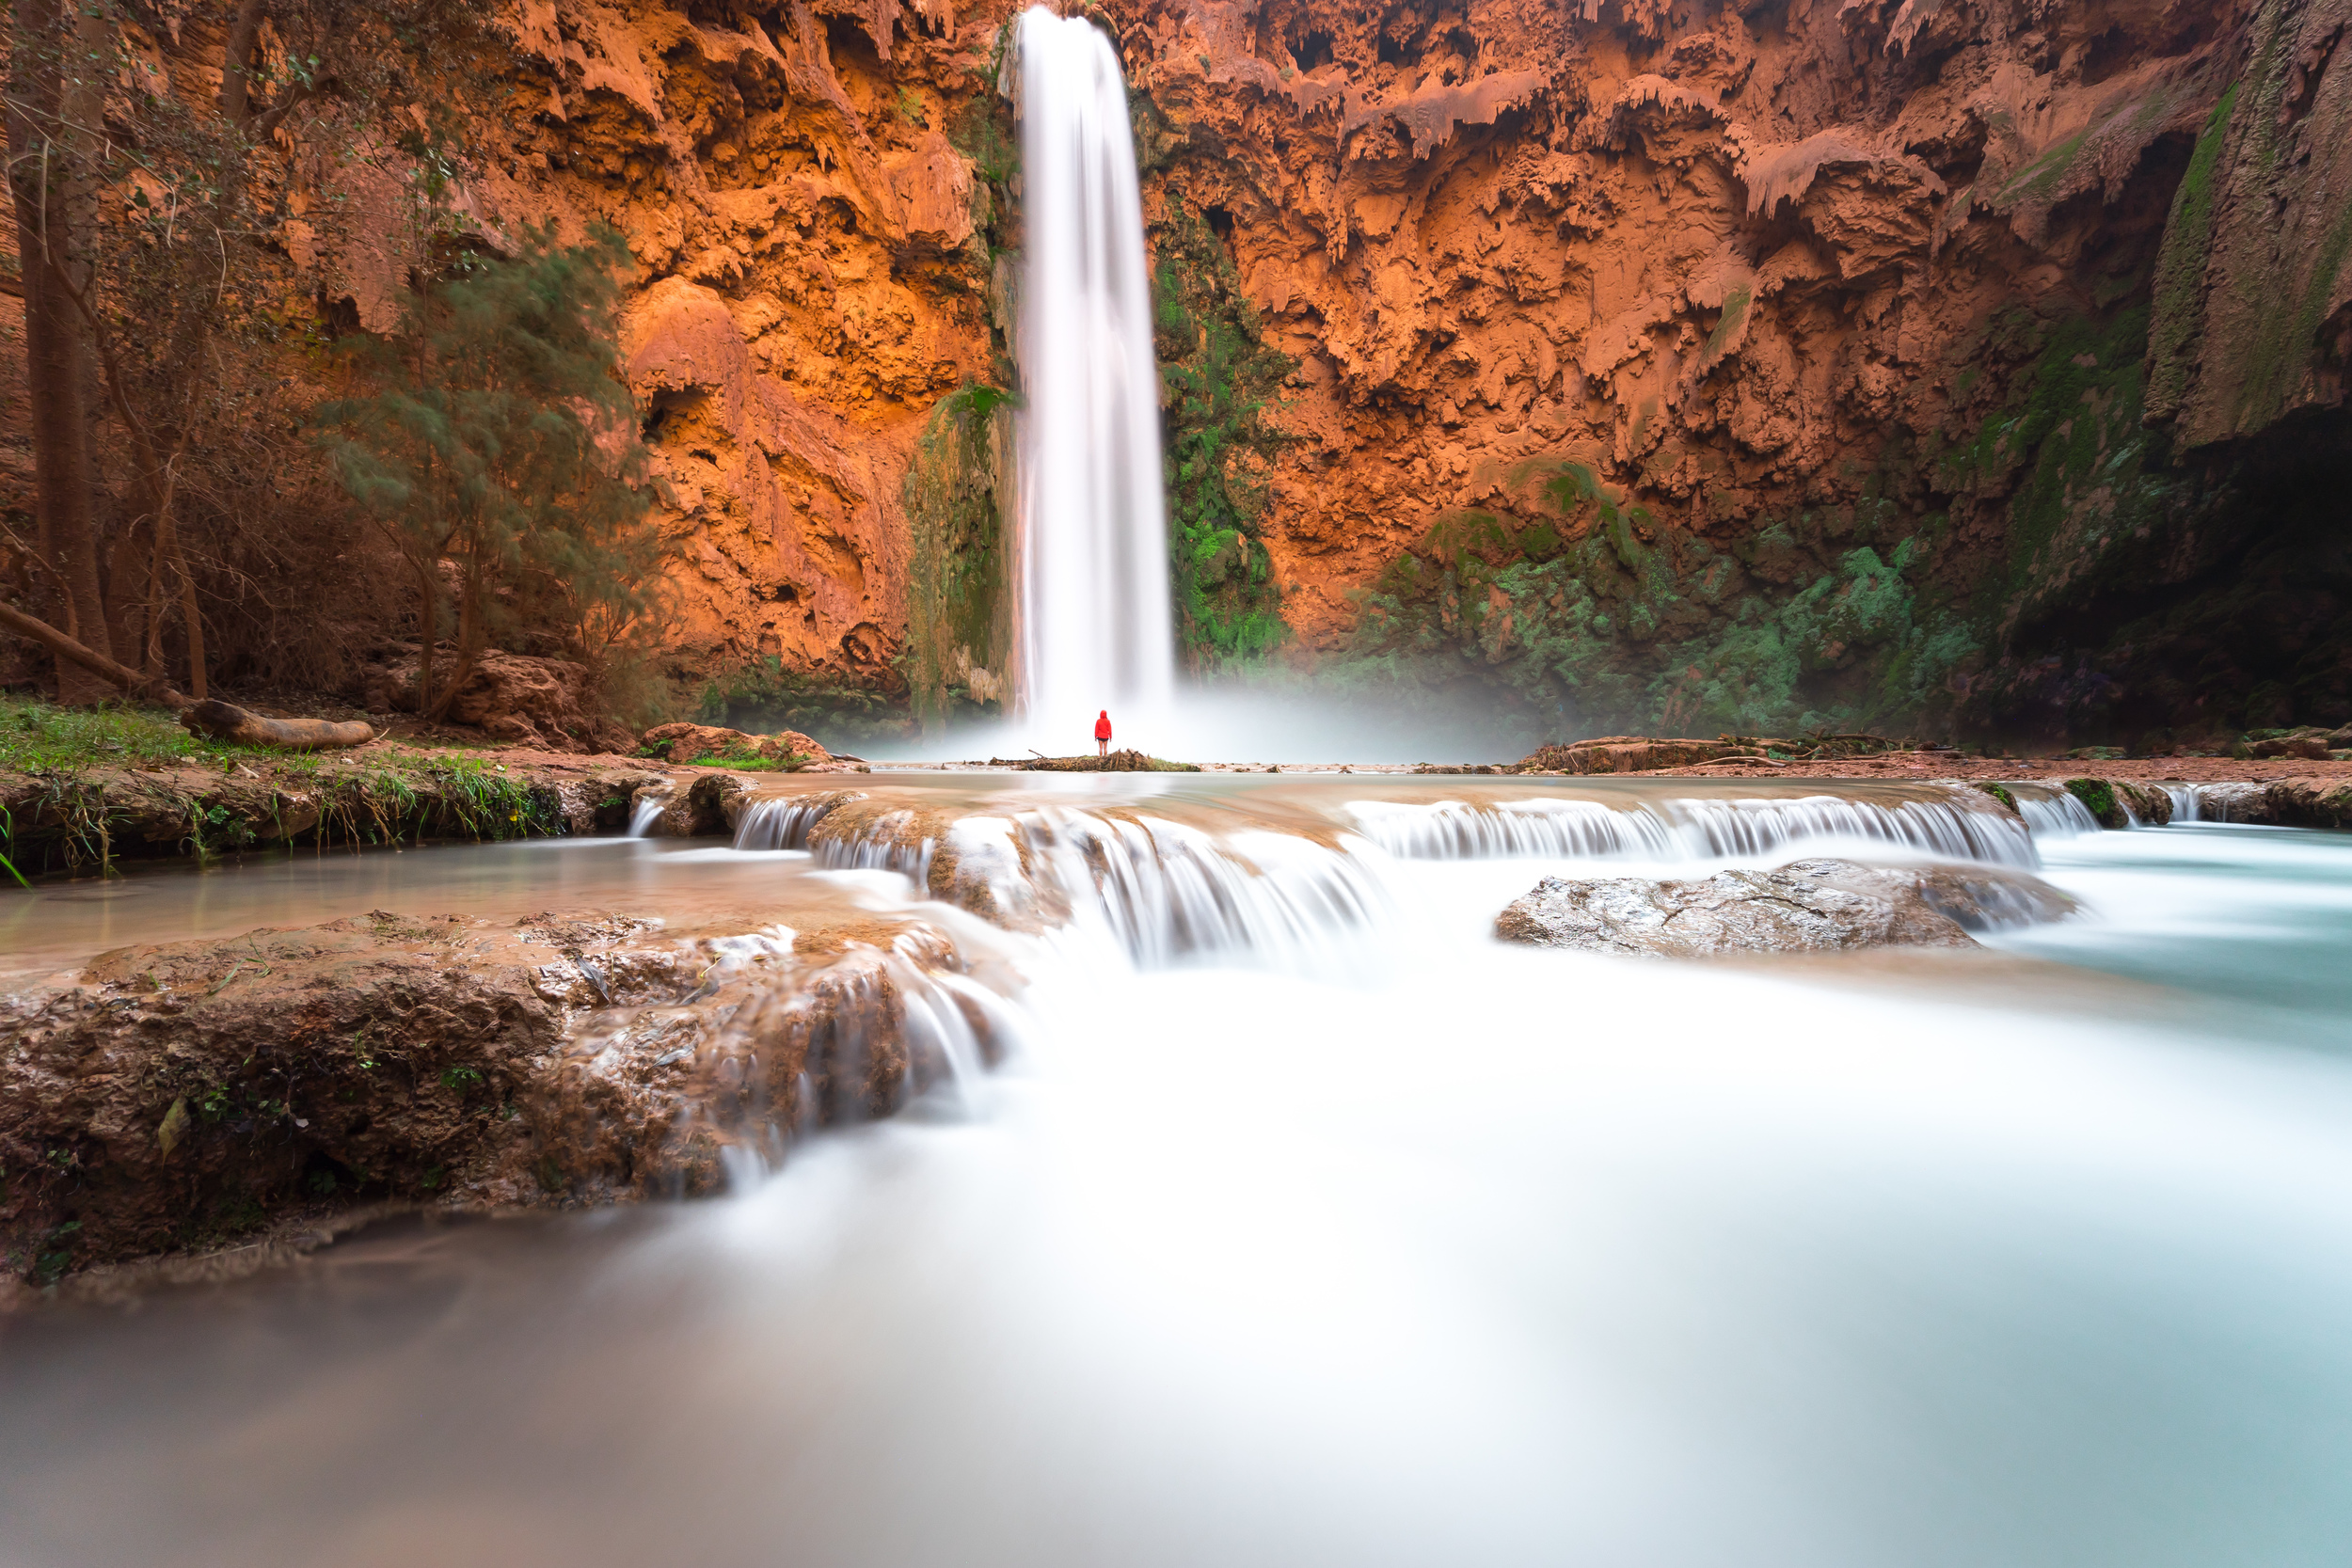 At 196 feet, Mooney Falls stands as Havasupai's tallest waterfall. Even taller than Niagara Falls, it's easy to feel small at this grand waterfall.